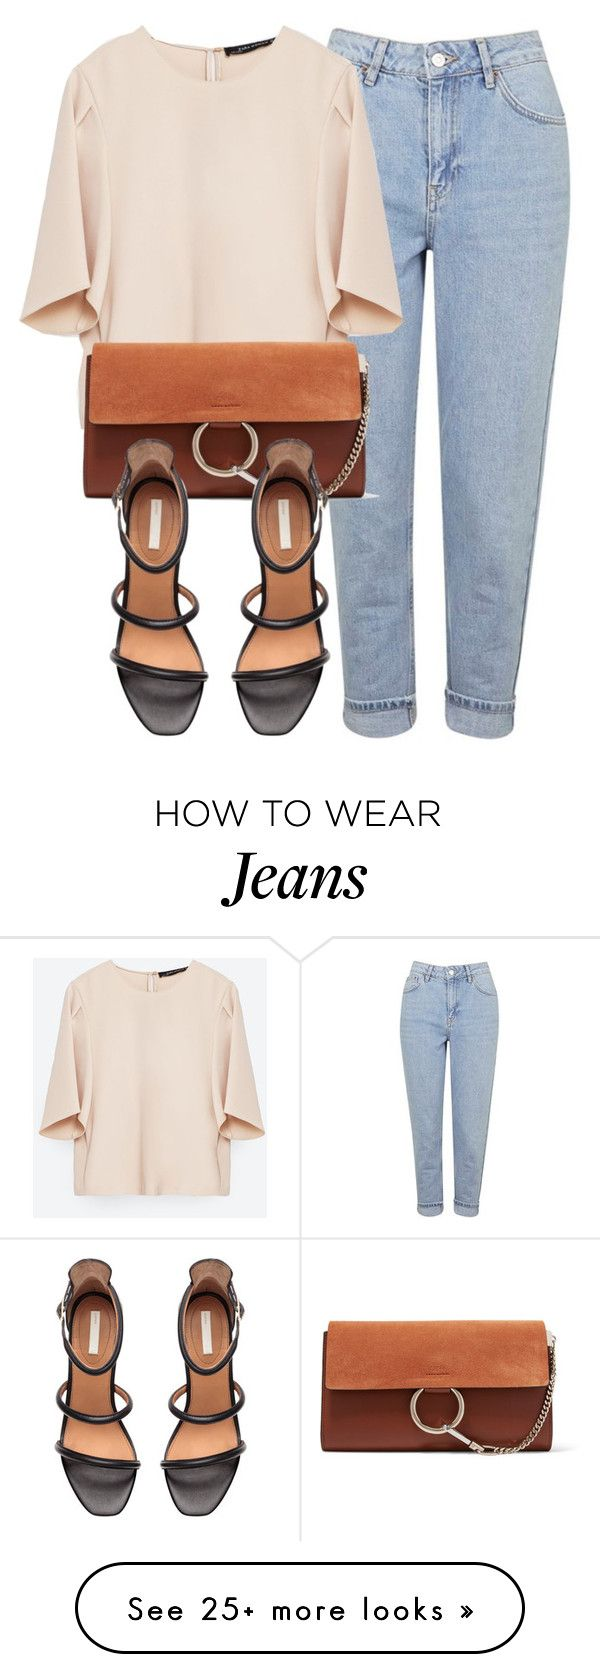 """Untitled #5783"" by laurenmboot on Polyvore featuring Topshop, Zara, Chloé and H&M"